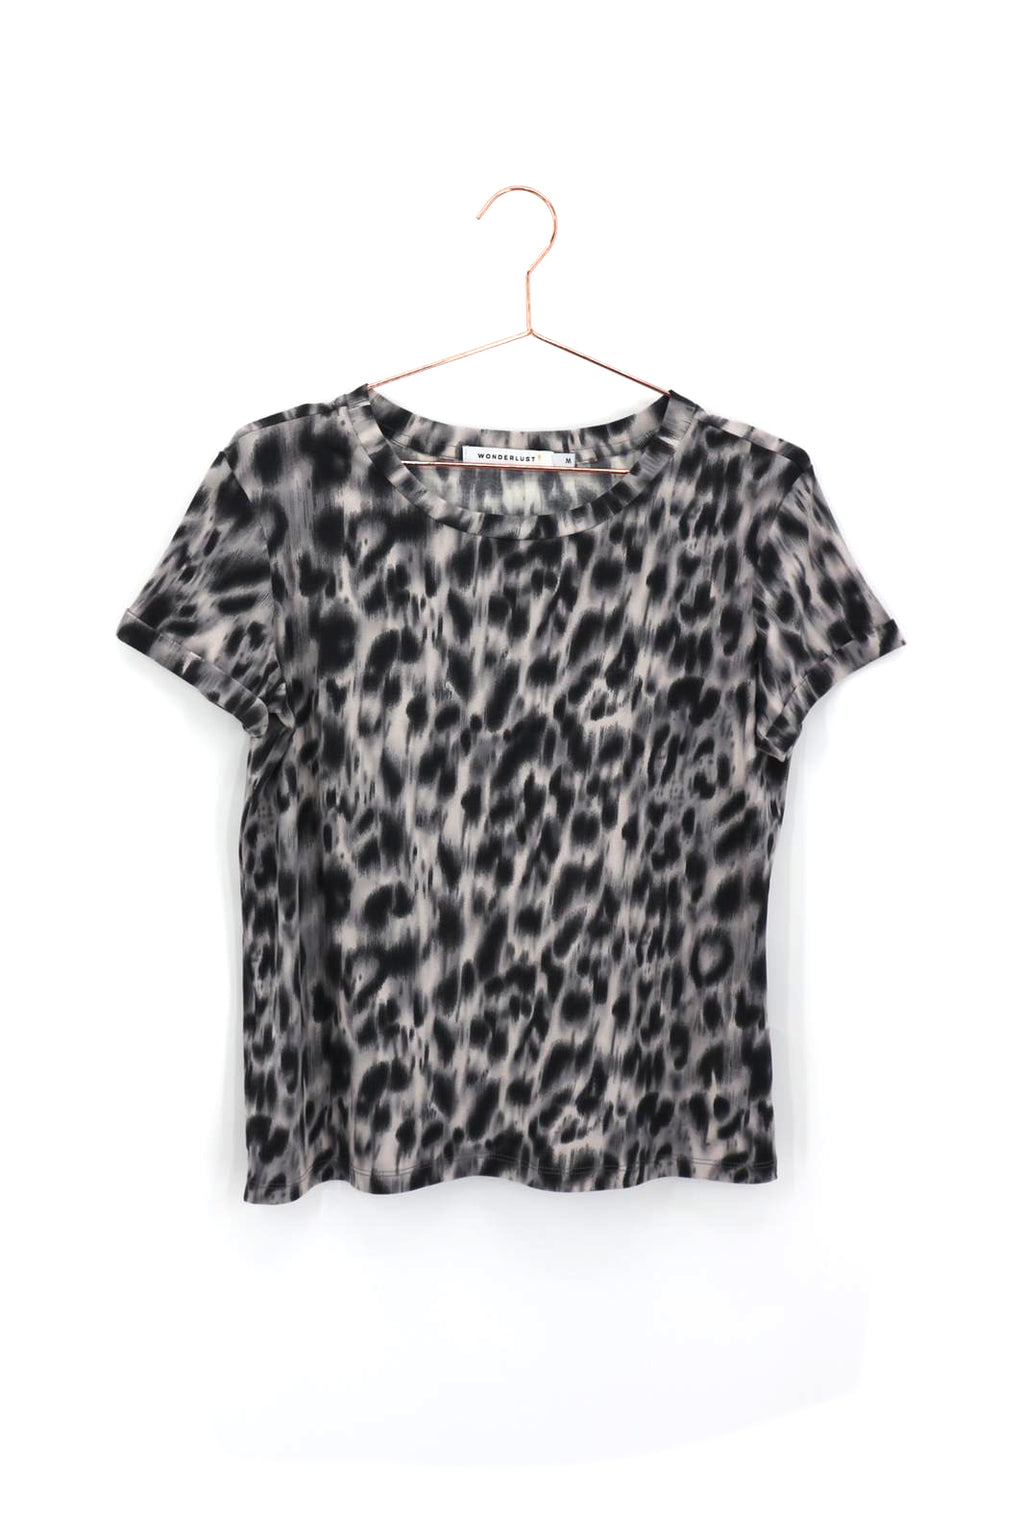 Miffy T Shirt Silver Leopard